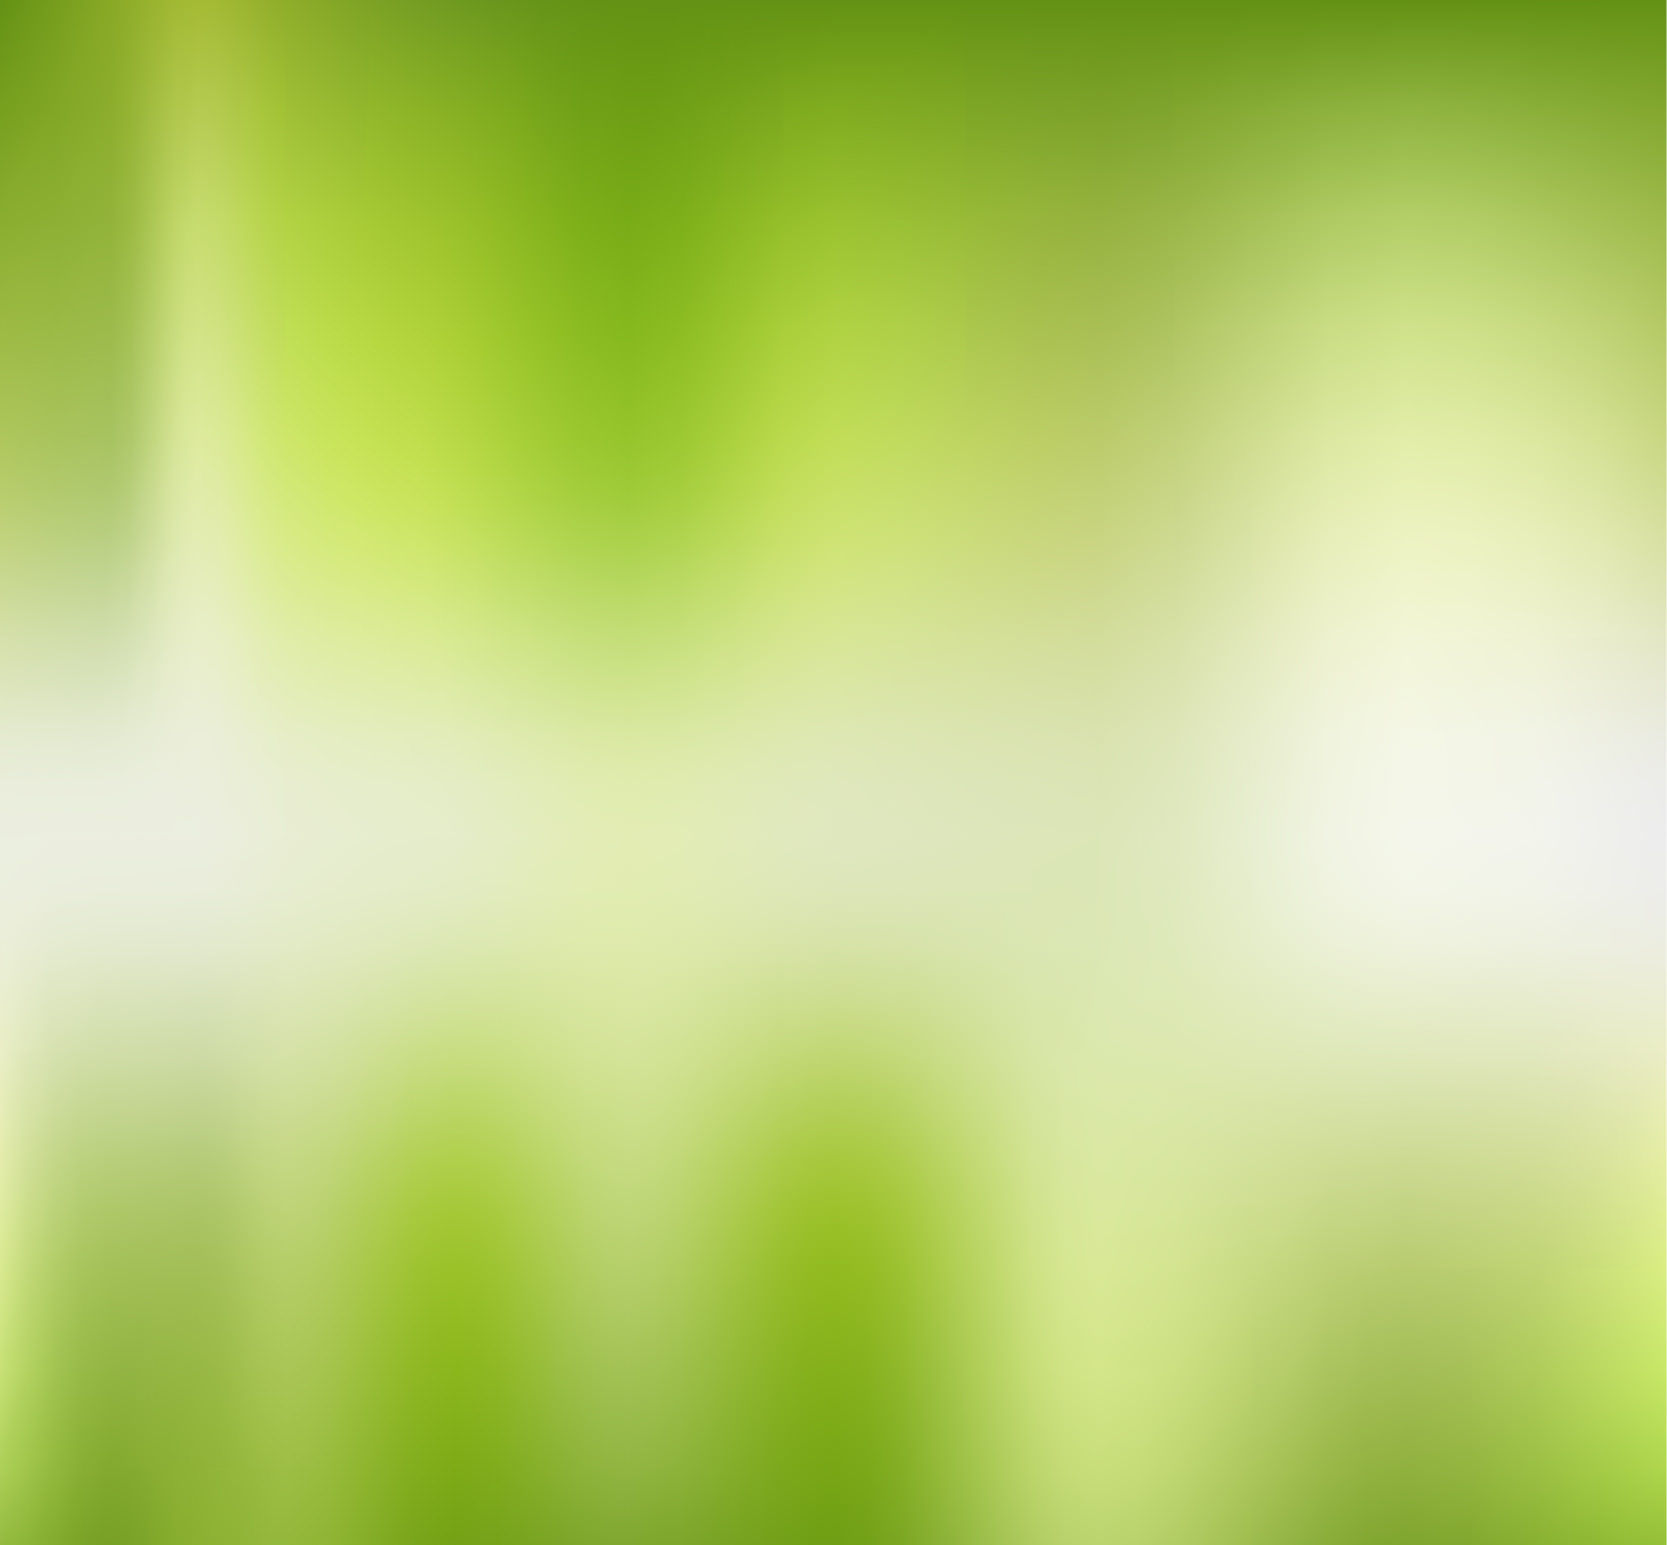 Green Background in Blurred Style